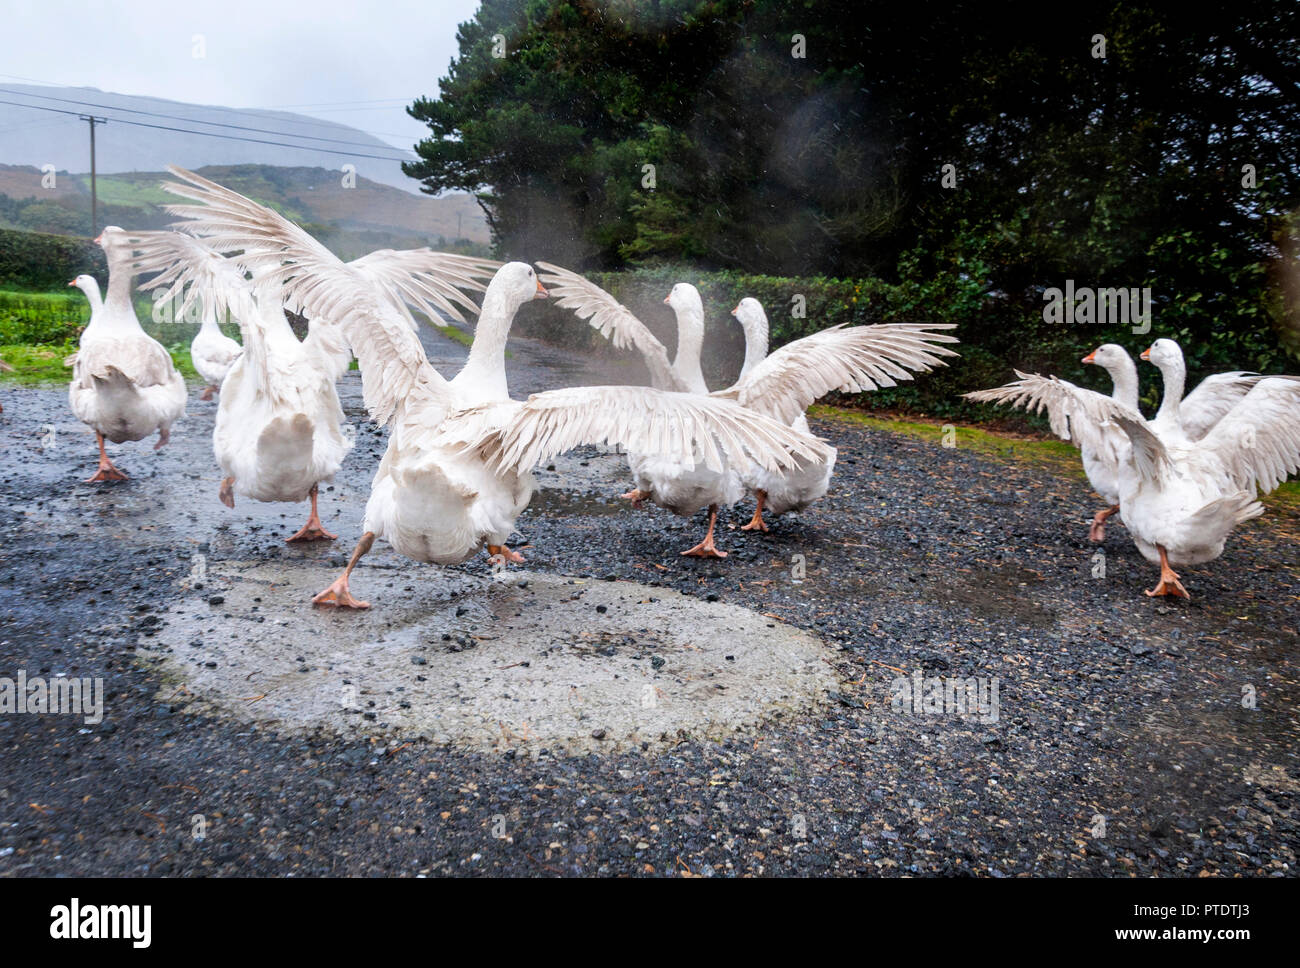 Ardara, County Donegal, Ireland weather. 9th October 2018. A day of strong wind and incessant rain on the north-west coast. Geese enjoy the rain on a farm. Credit: Richard Wayman/Alamy Live News - Stock Image